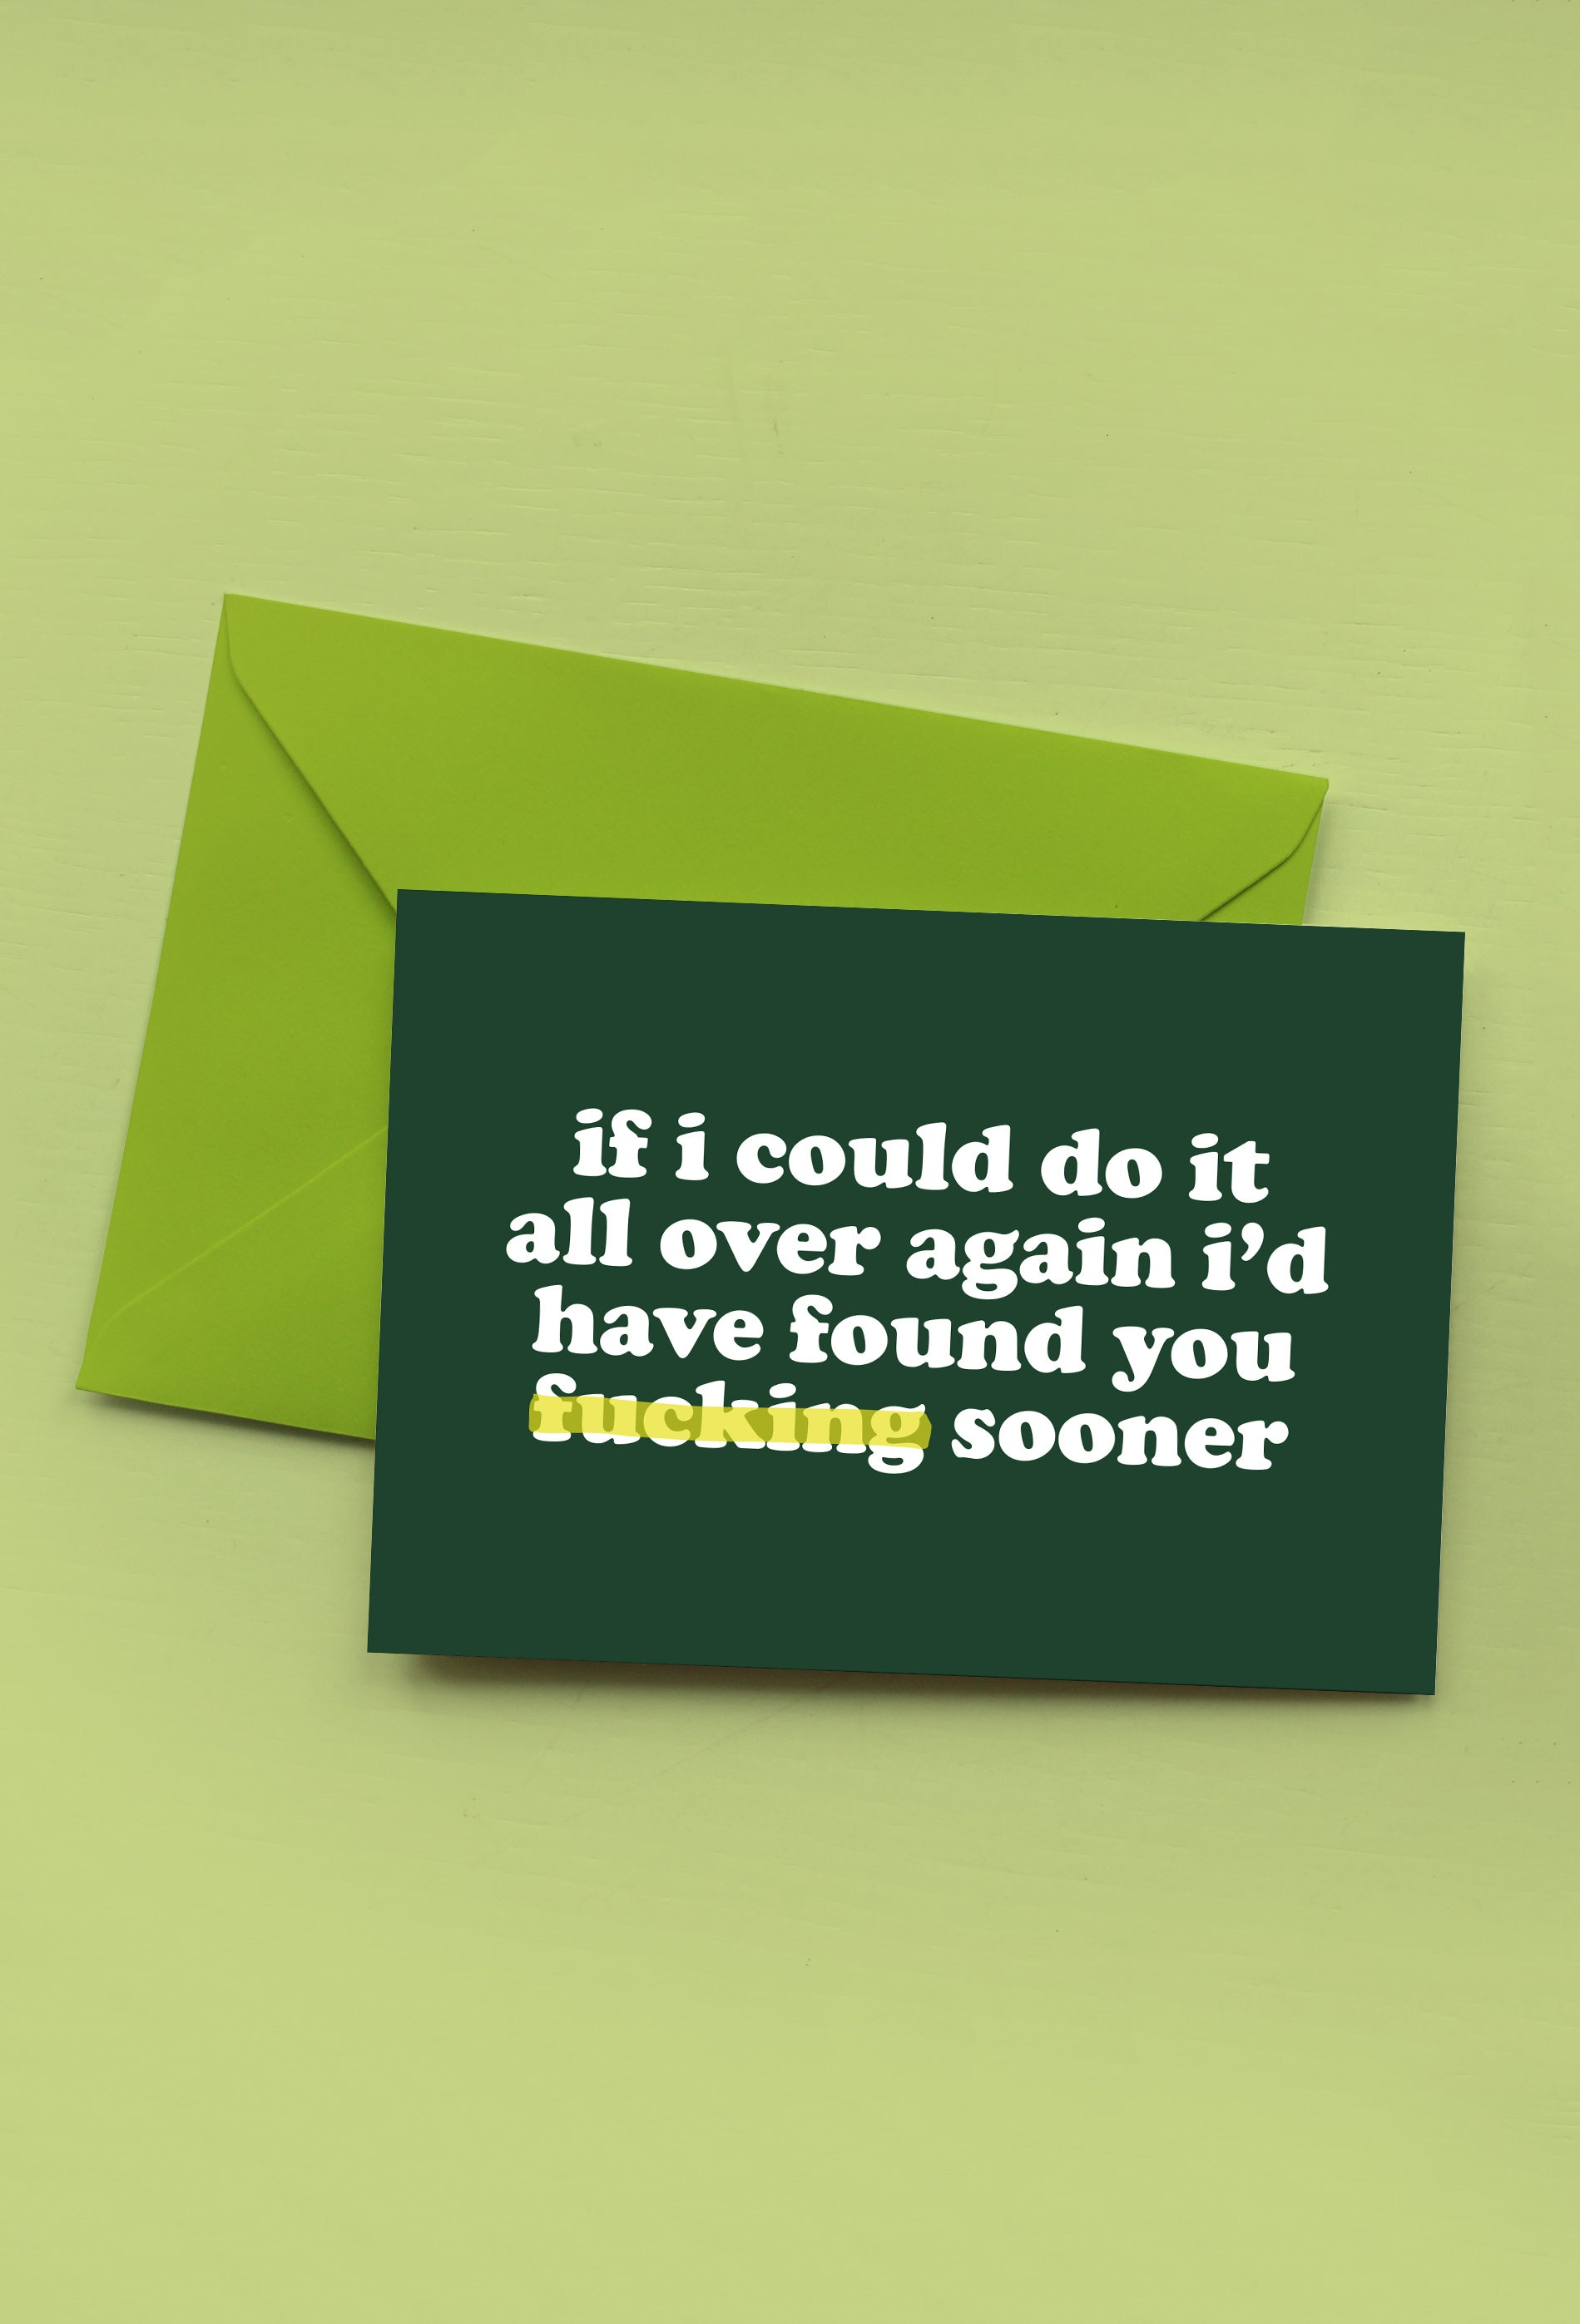 IF I COULD DO IT ALL OVER AGAIN I'D HAVE FOUND YOU FUCKING SOONER - GREETINGS CARD